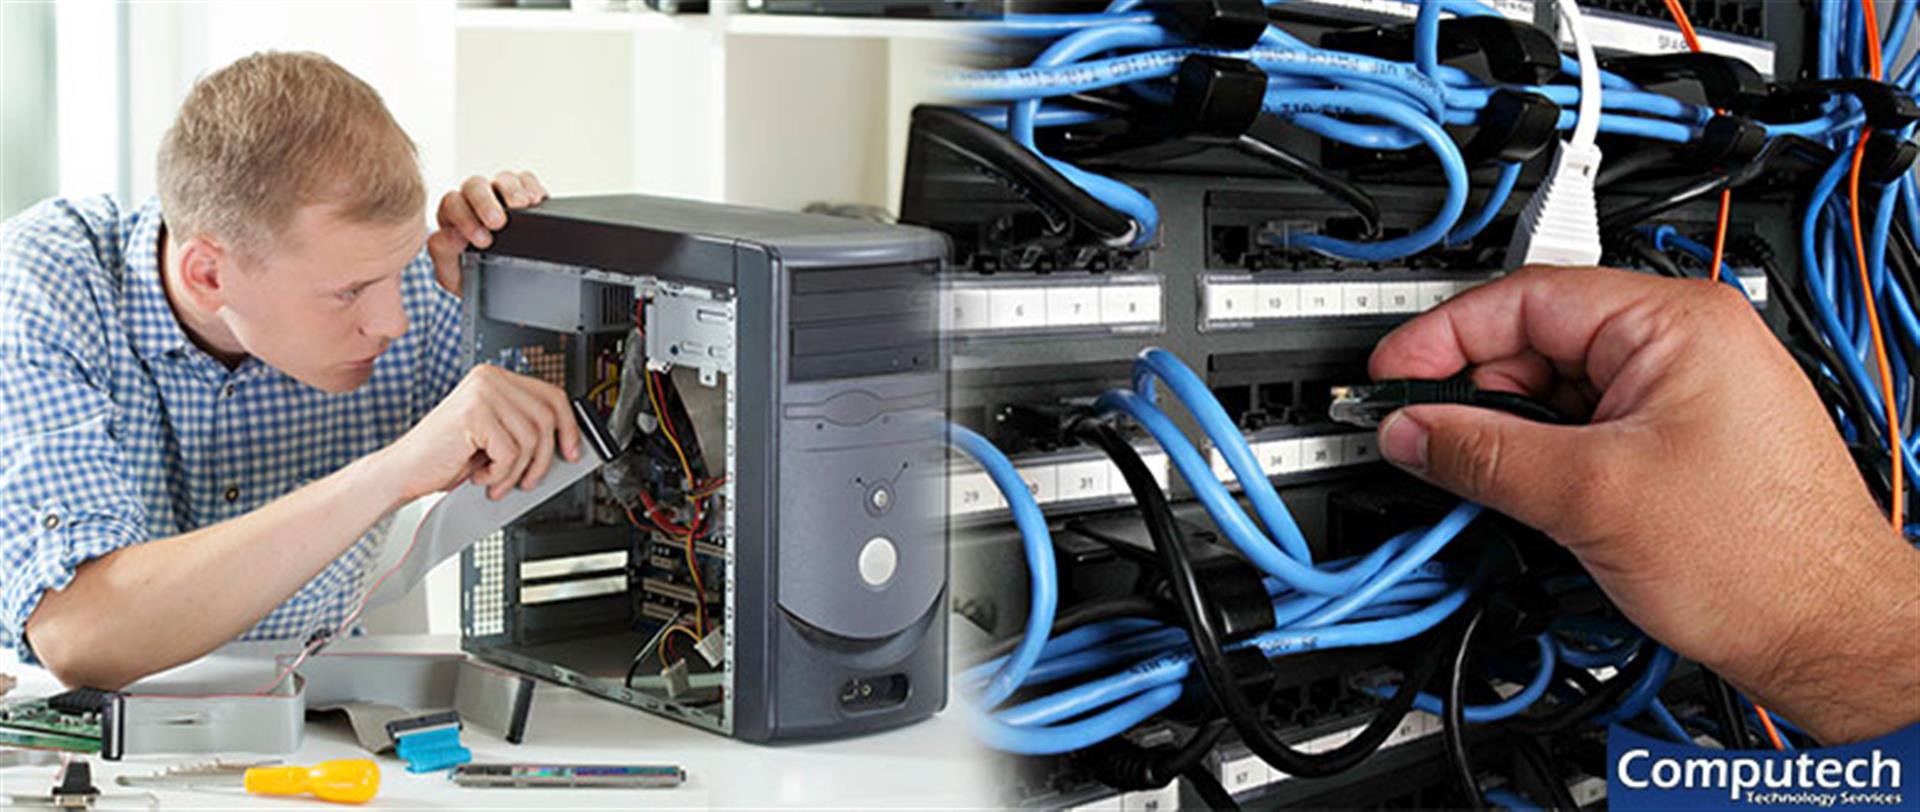 Somerville Tennessee On Site Computer PC and Printer Repairs, Network, Voice & Data Cabling Services